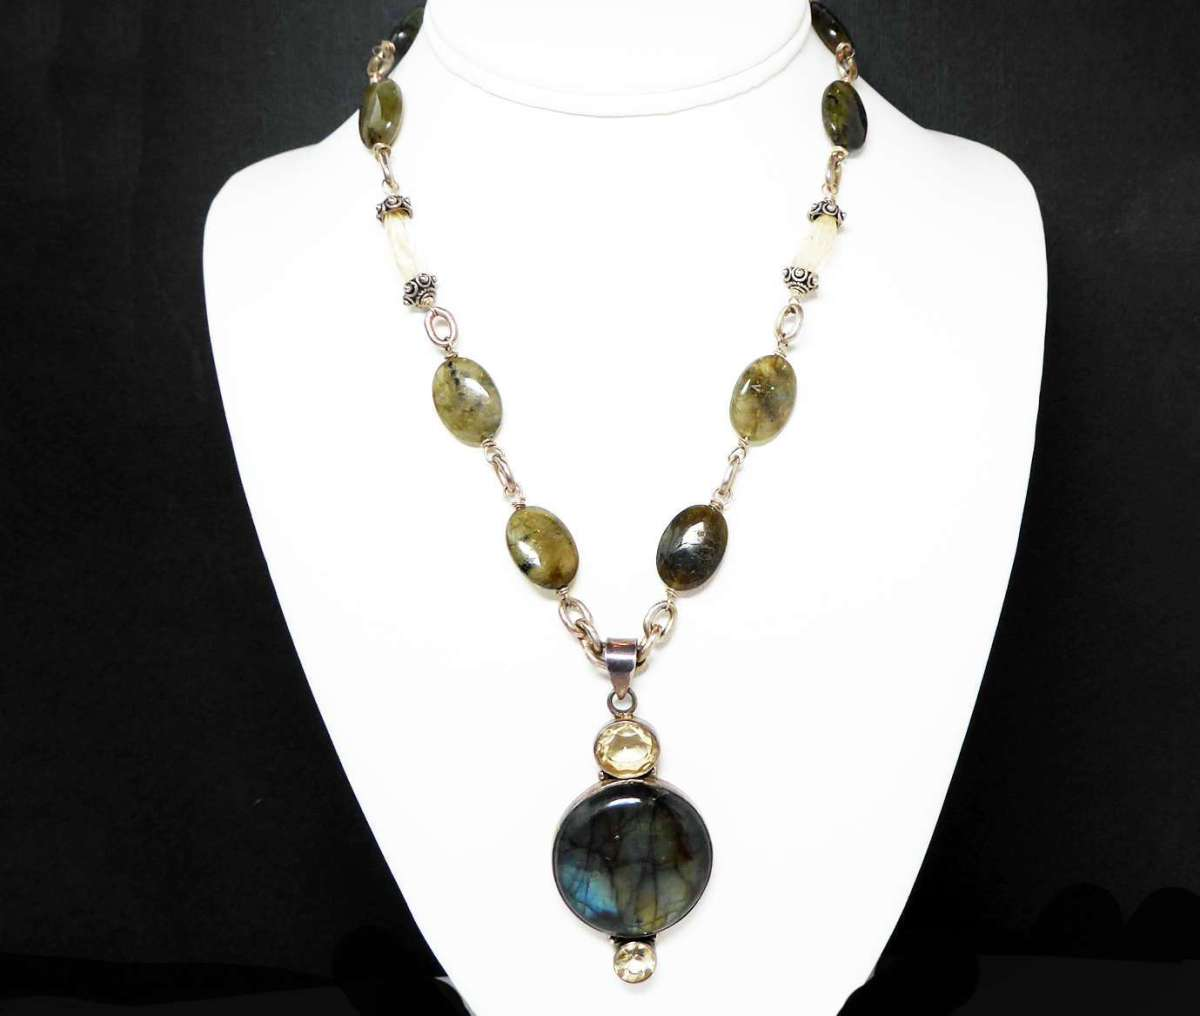 Just Listed!!!  Sterling Silver & Gemstones Pendant Necklace – Iridescent Blue Green Labradorite Gemstone with Faceted Citrine – Vintage Jewelry Signed 925: Sterling Silver & Gemstones Pendant Necklace - Iridescent Blue Green… http://dlvr.it/RQbgVf Shop Now  Shop Now!!!pic.twitter.com/3yTI720wfk